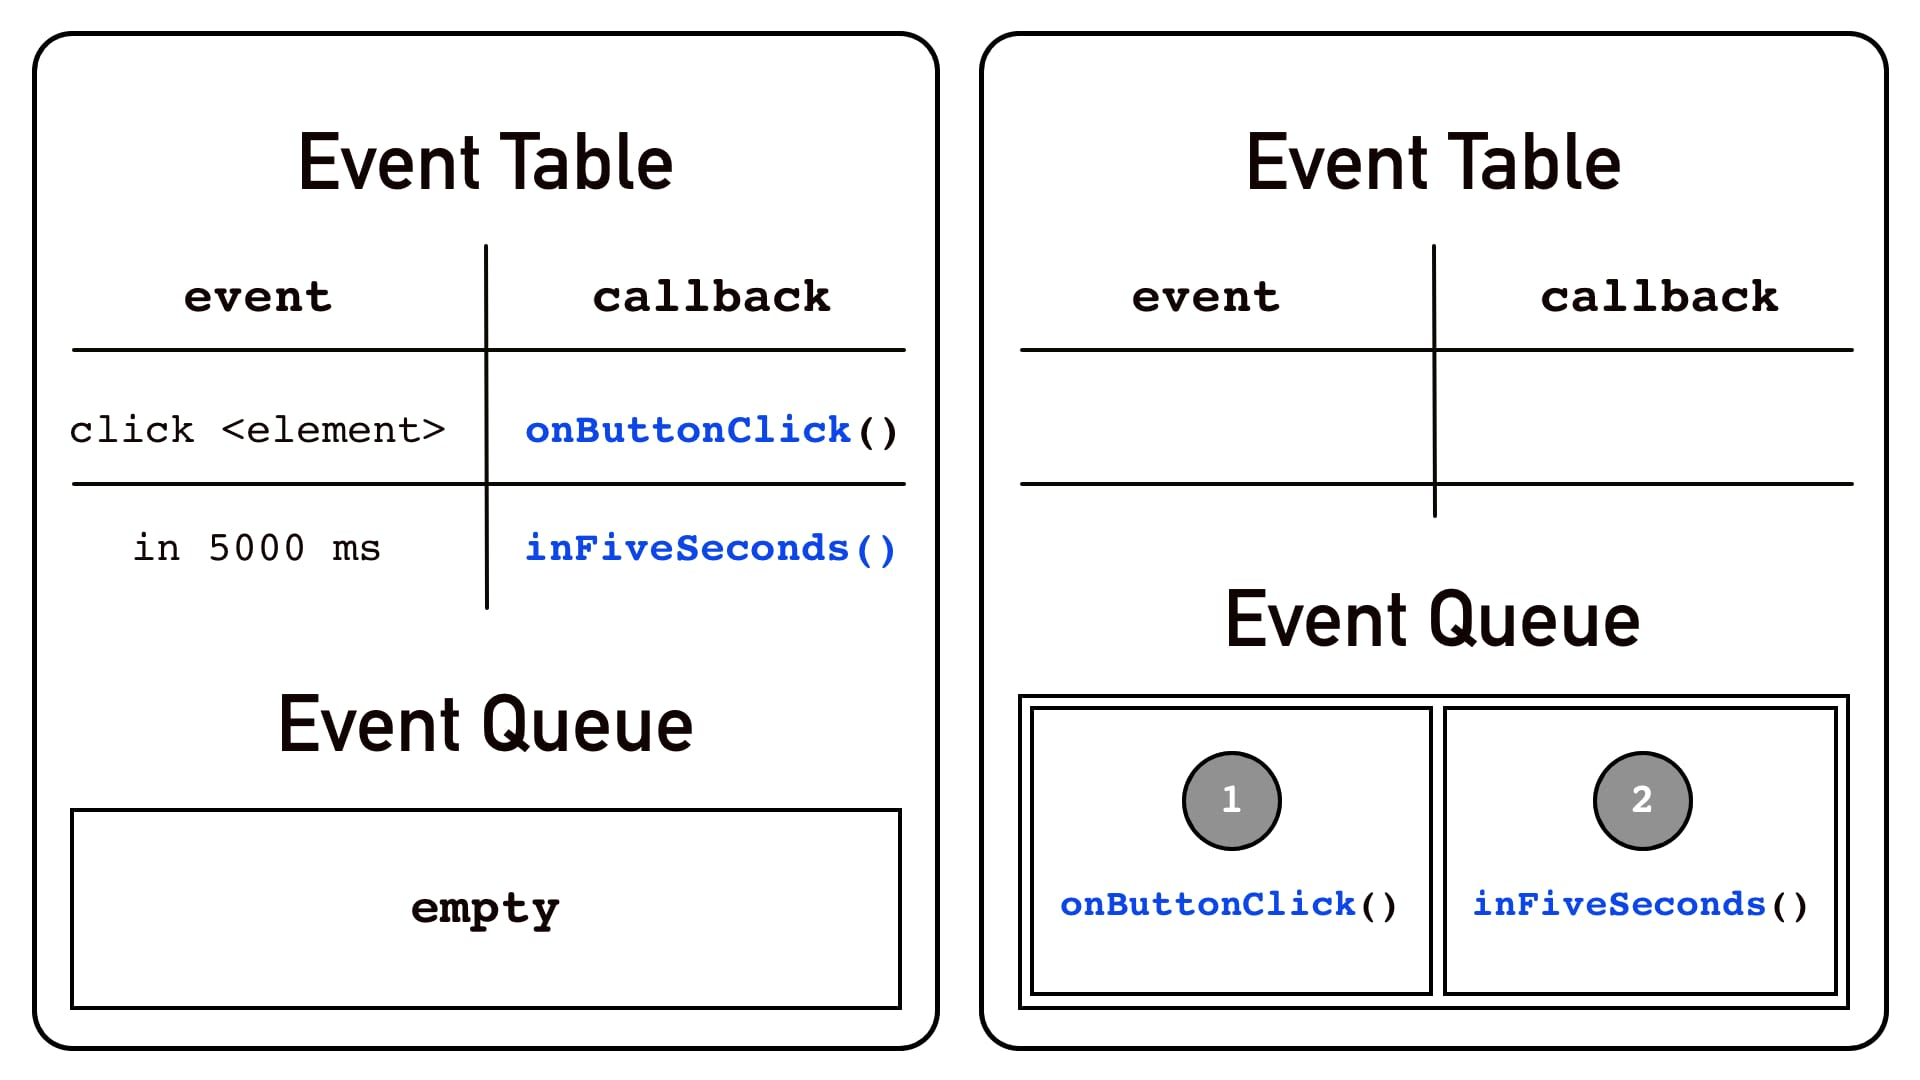 Schematic view of the Event Table and Event Queue. On the left side we have two scheduled events: click event and a timeout event (set via setTimeout()) and assigned callback functions. The Event Queue is empty. Then, let's imagine a user clicks the button and then 5s timeout passes. On the right side, the Event Table moves callbacks to the Event Queue in the same order events happened.